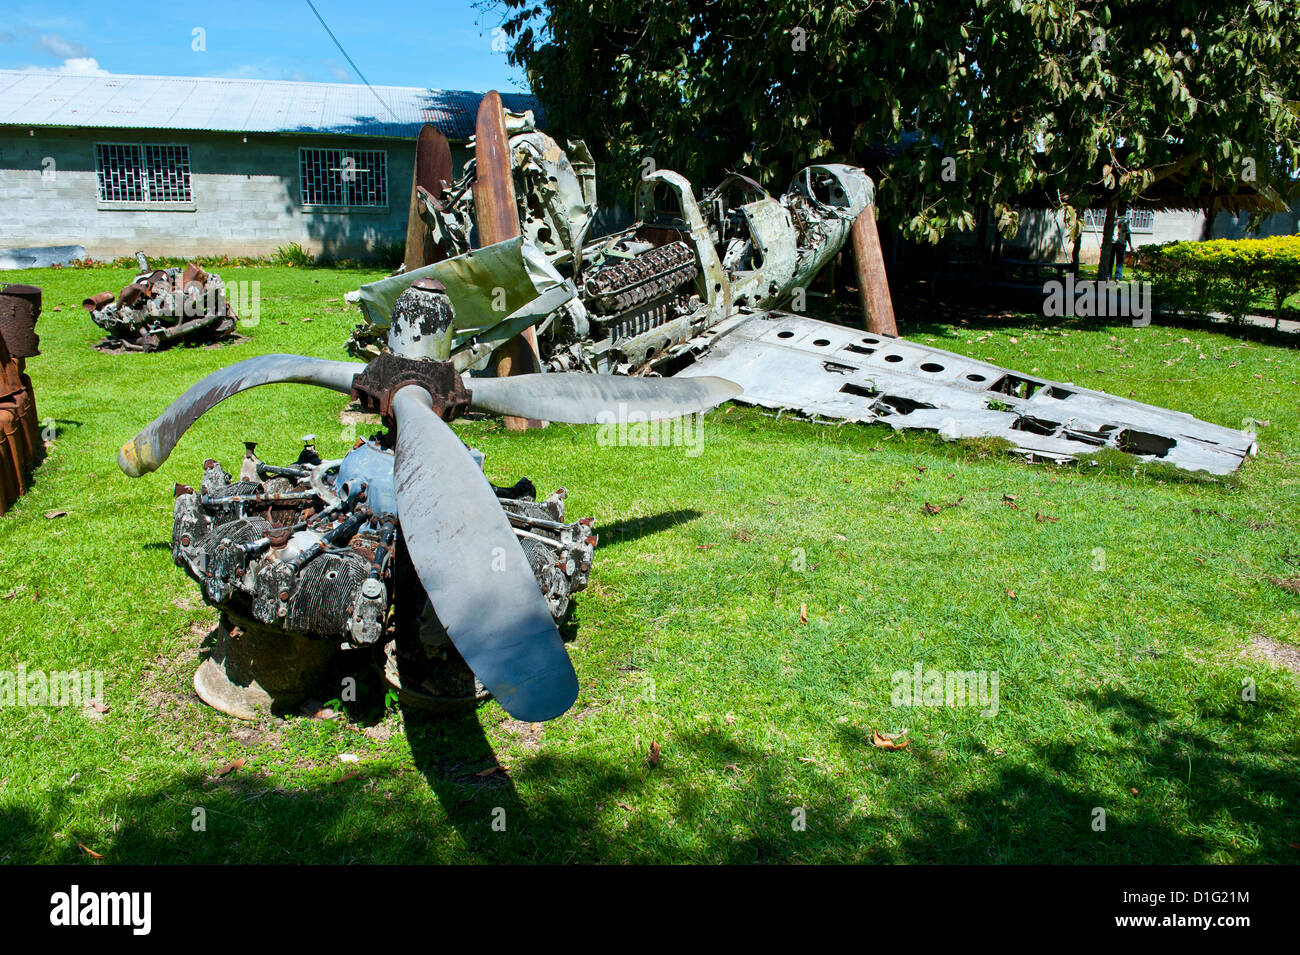 Second Wordl War relic at the Betikama SDA mission, Honiara, capital of the Solomon Islands, Pacific - Stock Image